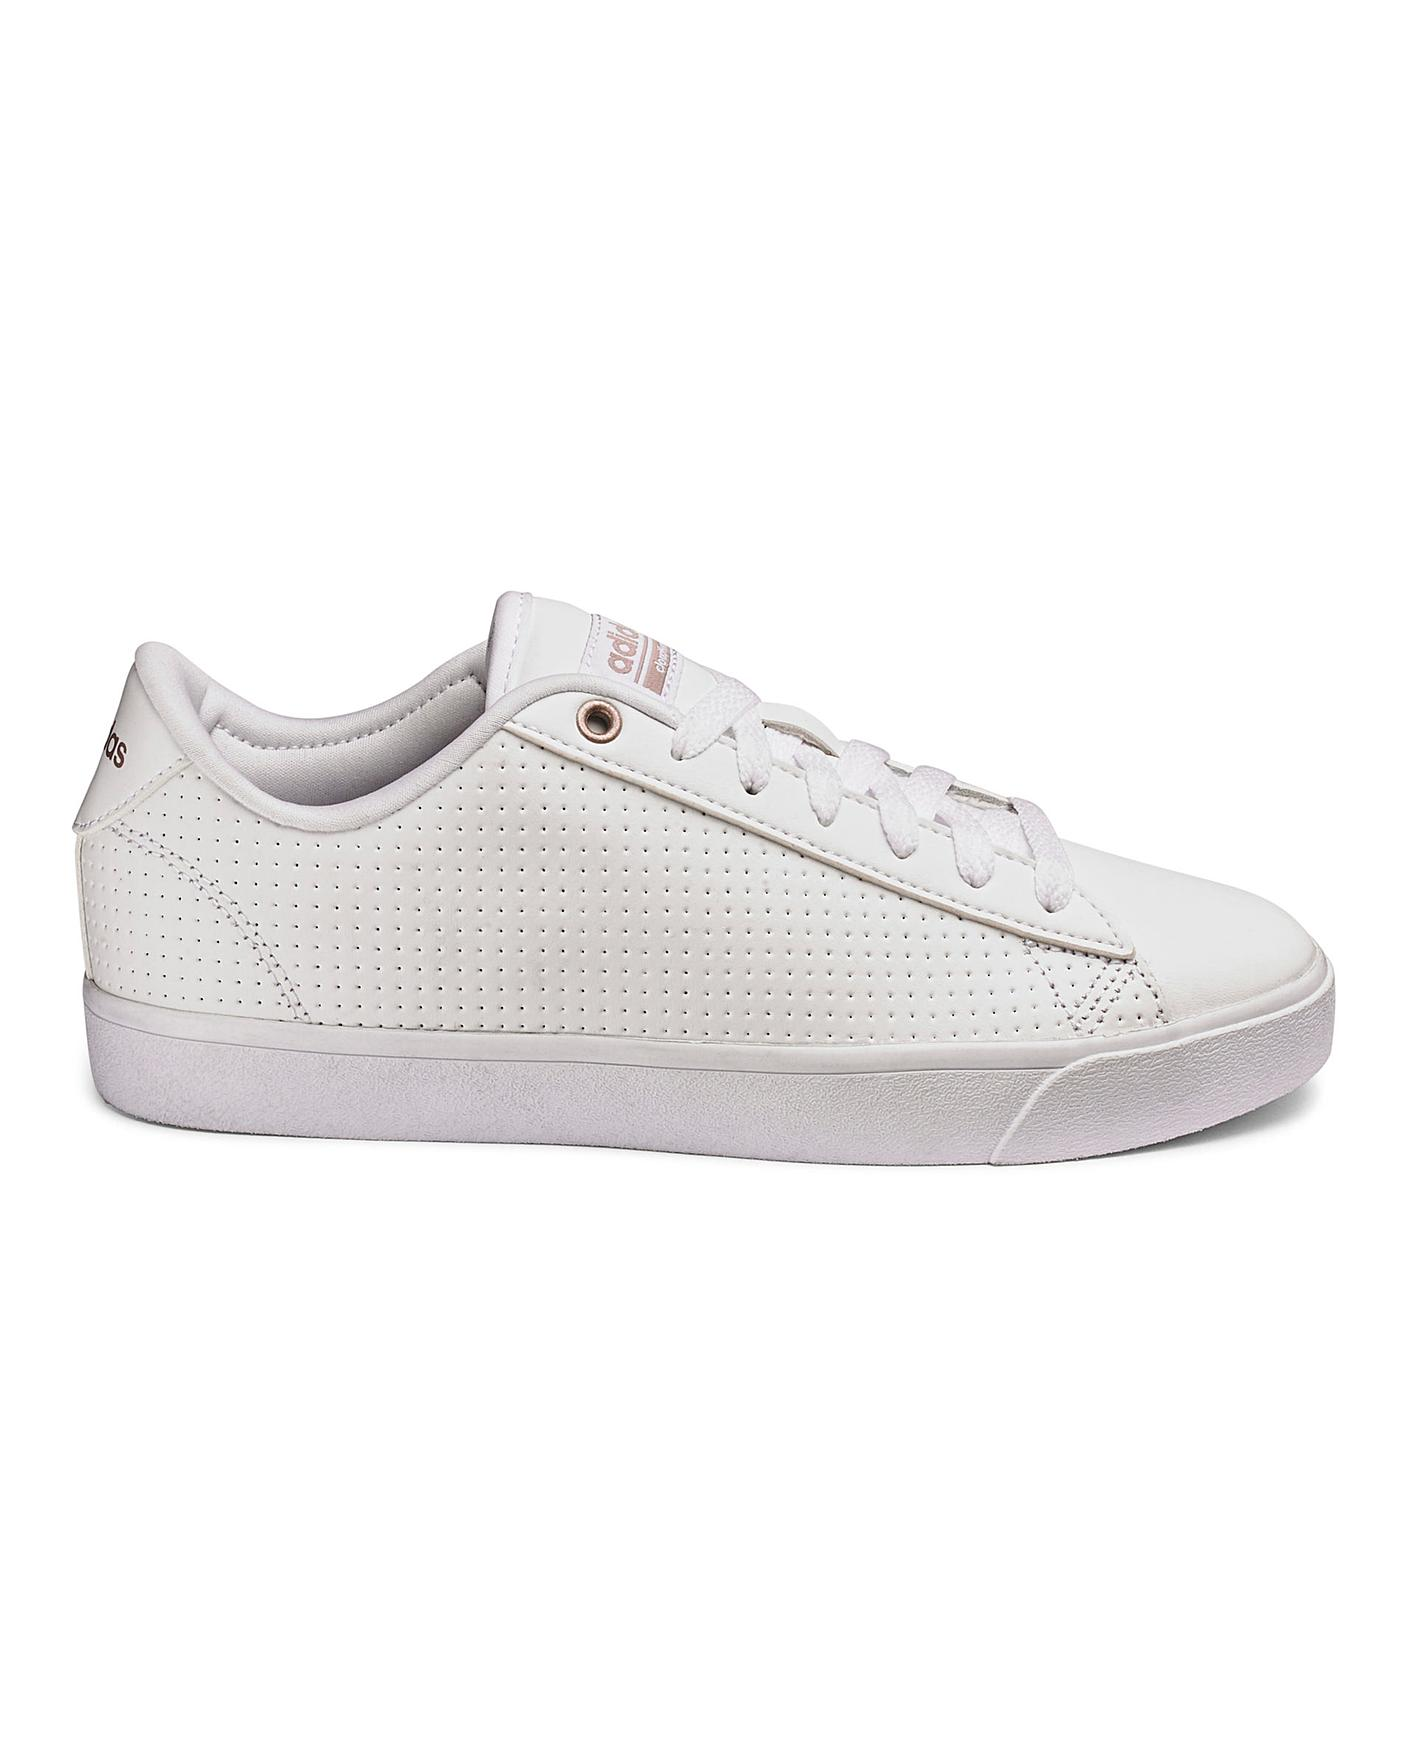 ADIDAS DAILY QT CLEAN TRAINERS | Oxendales